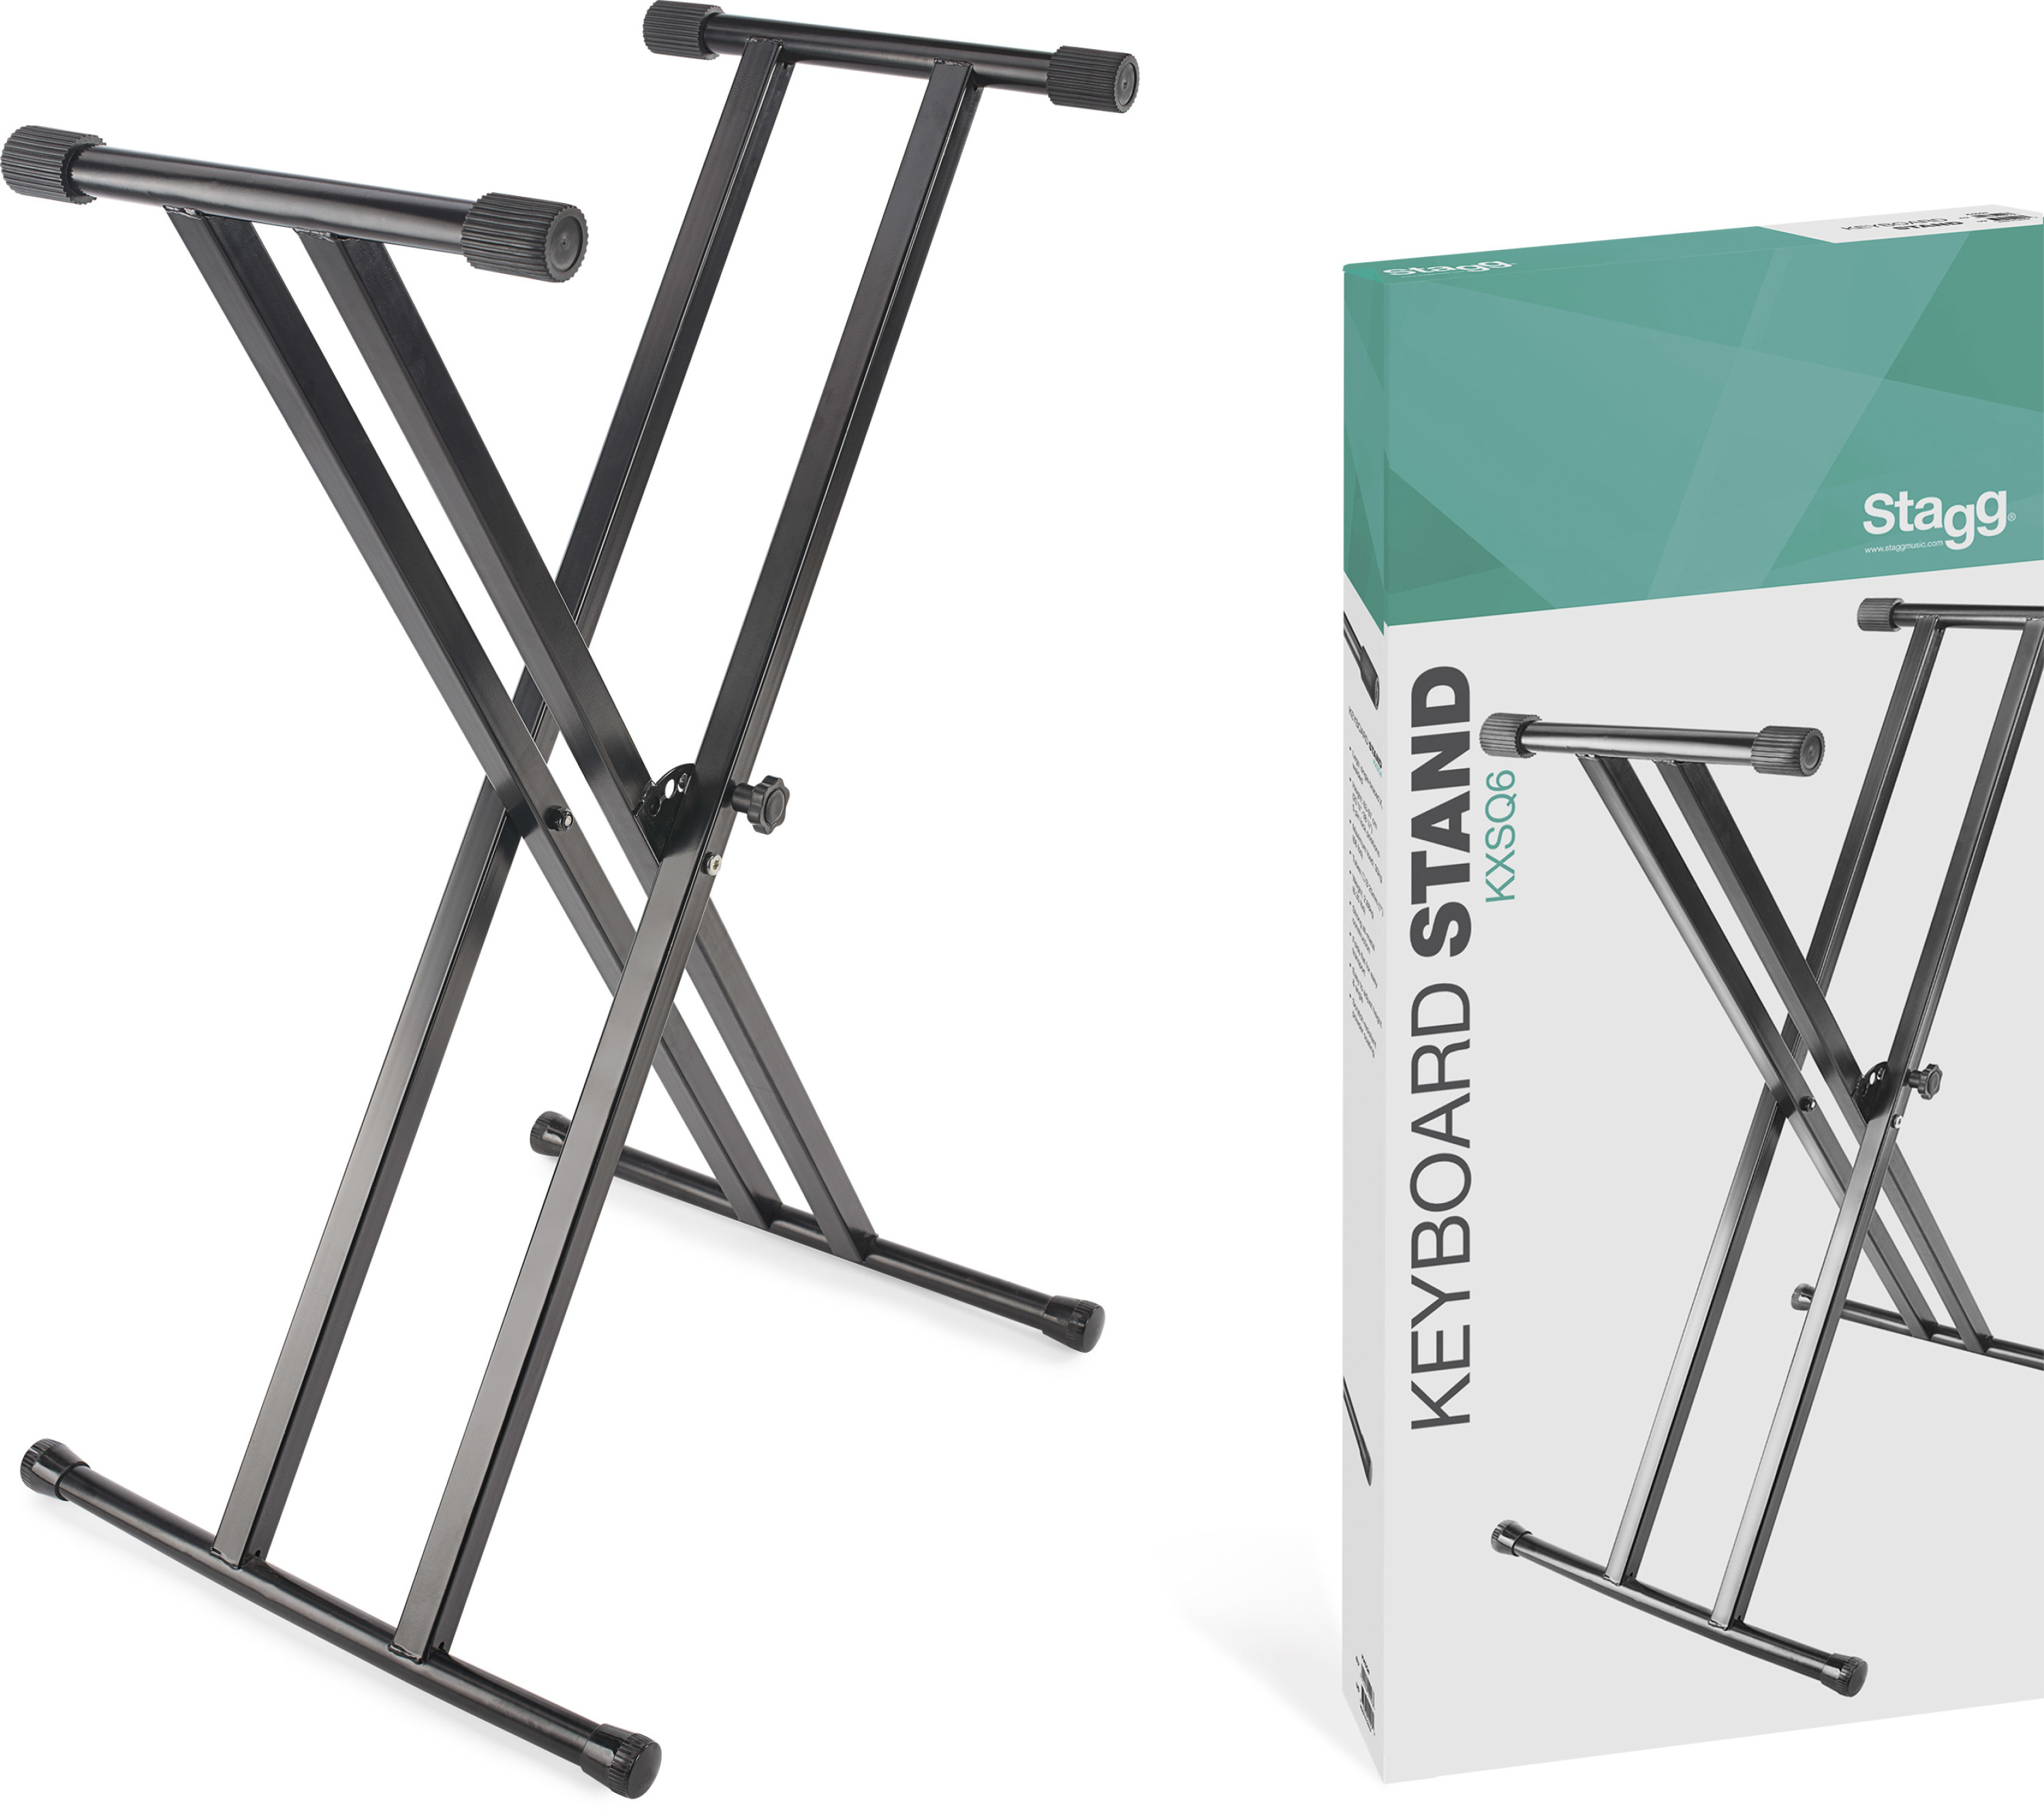 Stagg KXSQ6 Double Braced X-style Keyboard Stand